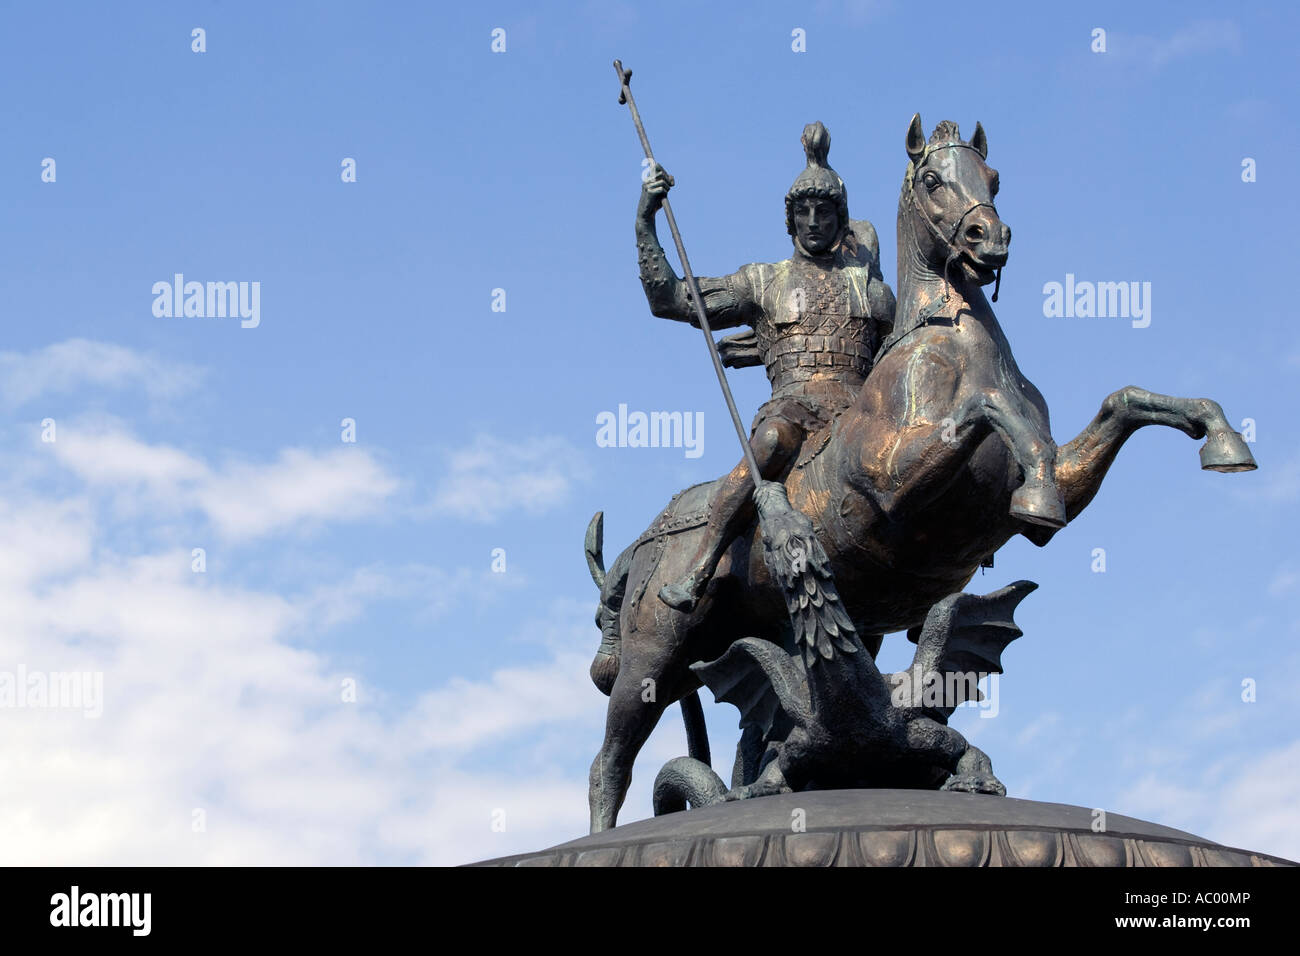 Bronze statue of St George and the Dragon in Manege Square in Moscow - Stock Image